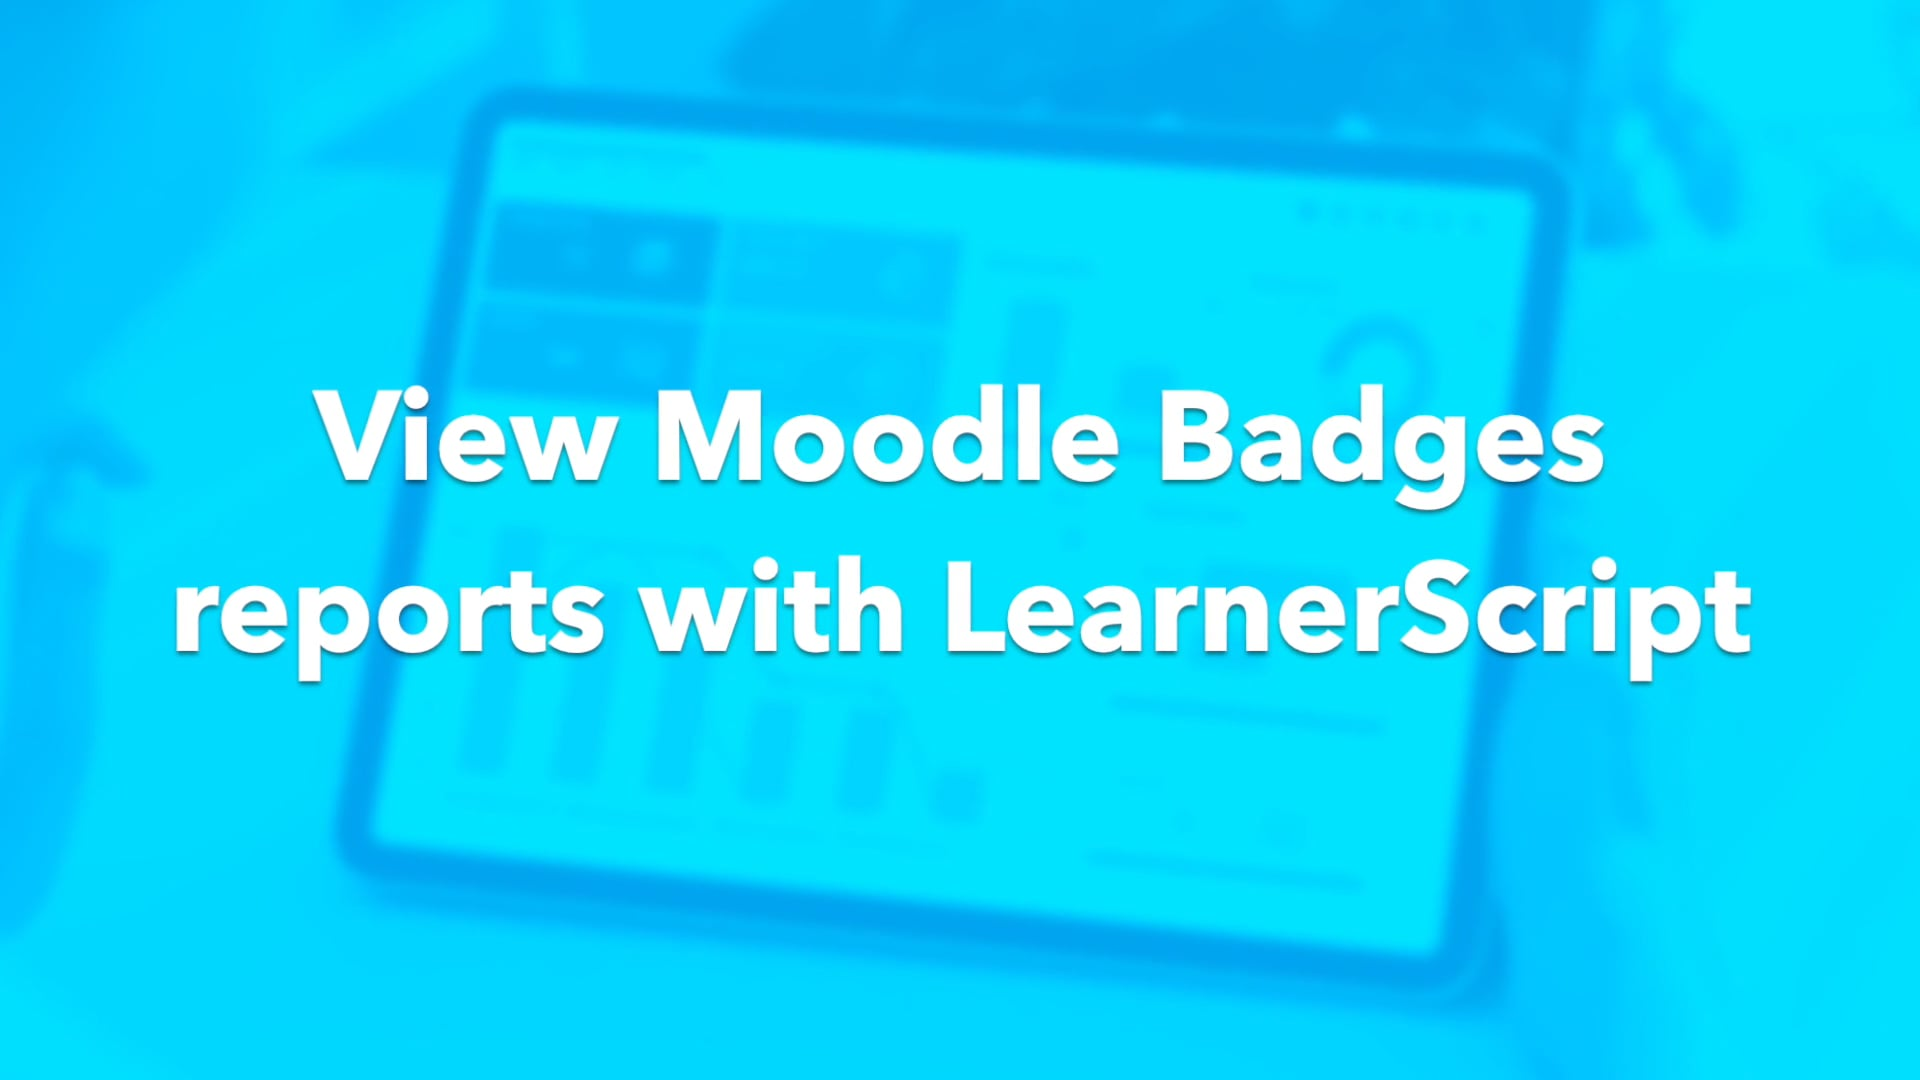 View Moodle Badges reports with LearnerScript